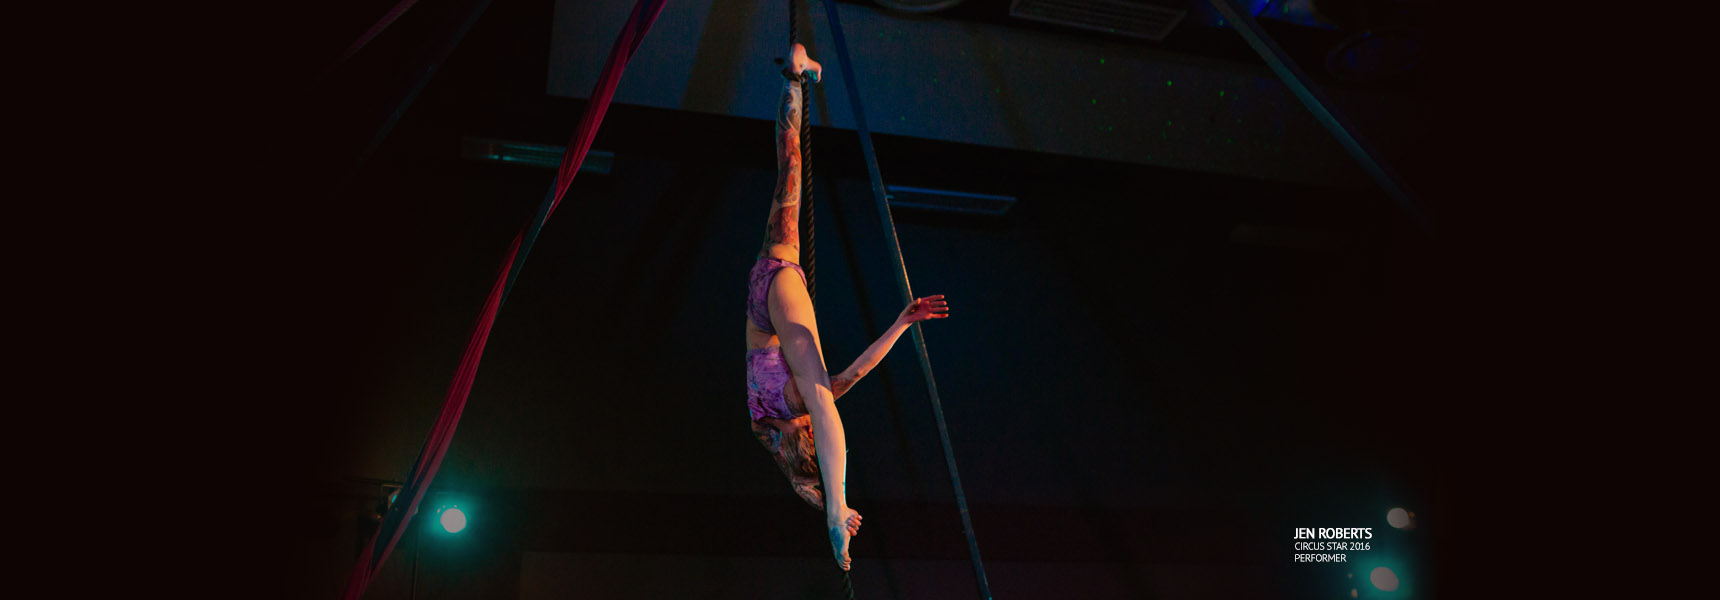 Jen Roberts, rope, Circus Star USA 2016 performer